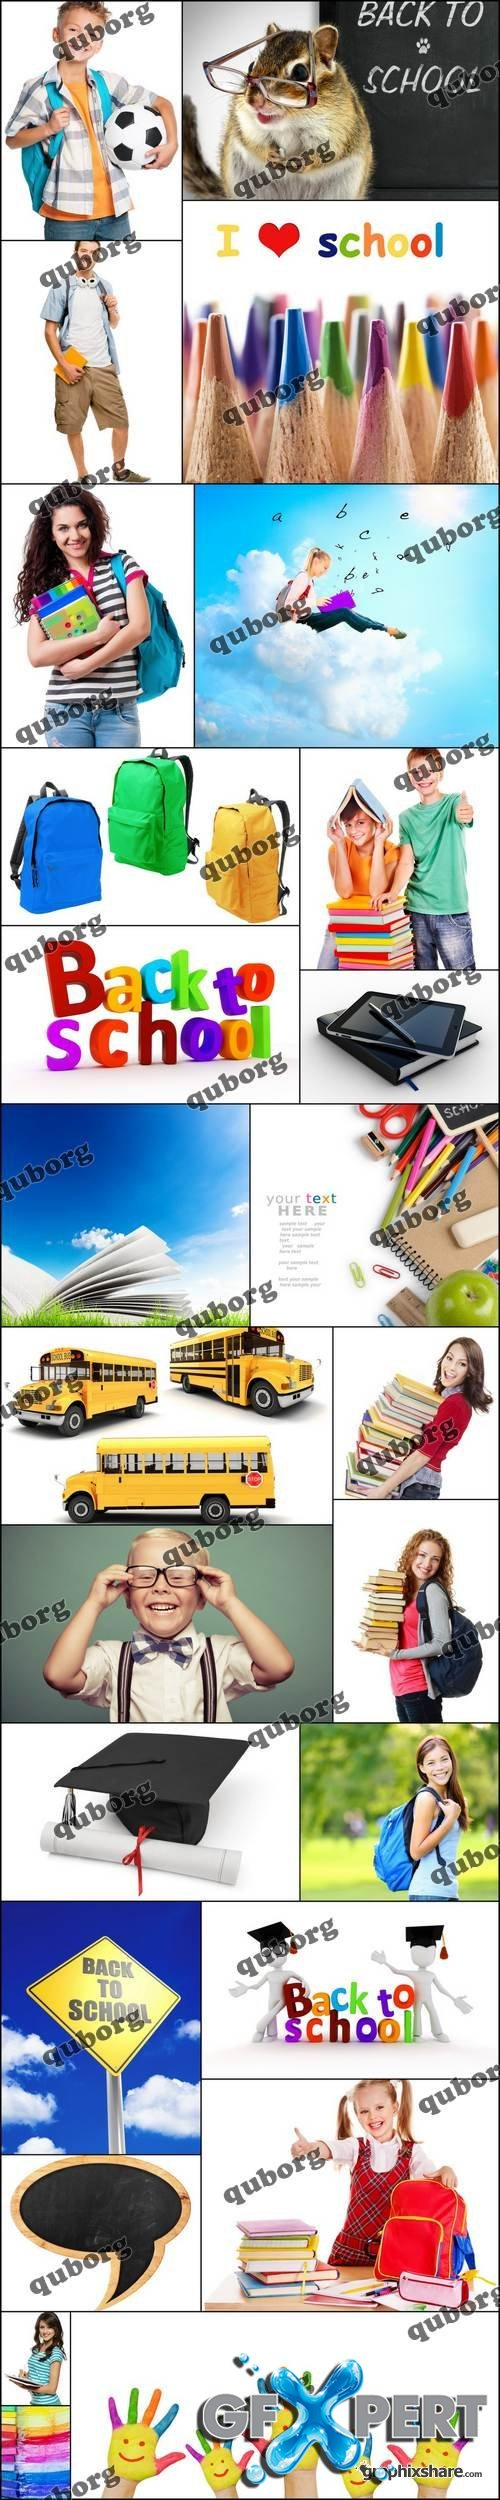 Stock Photos - Back to School 3